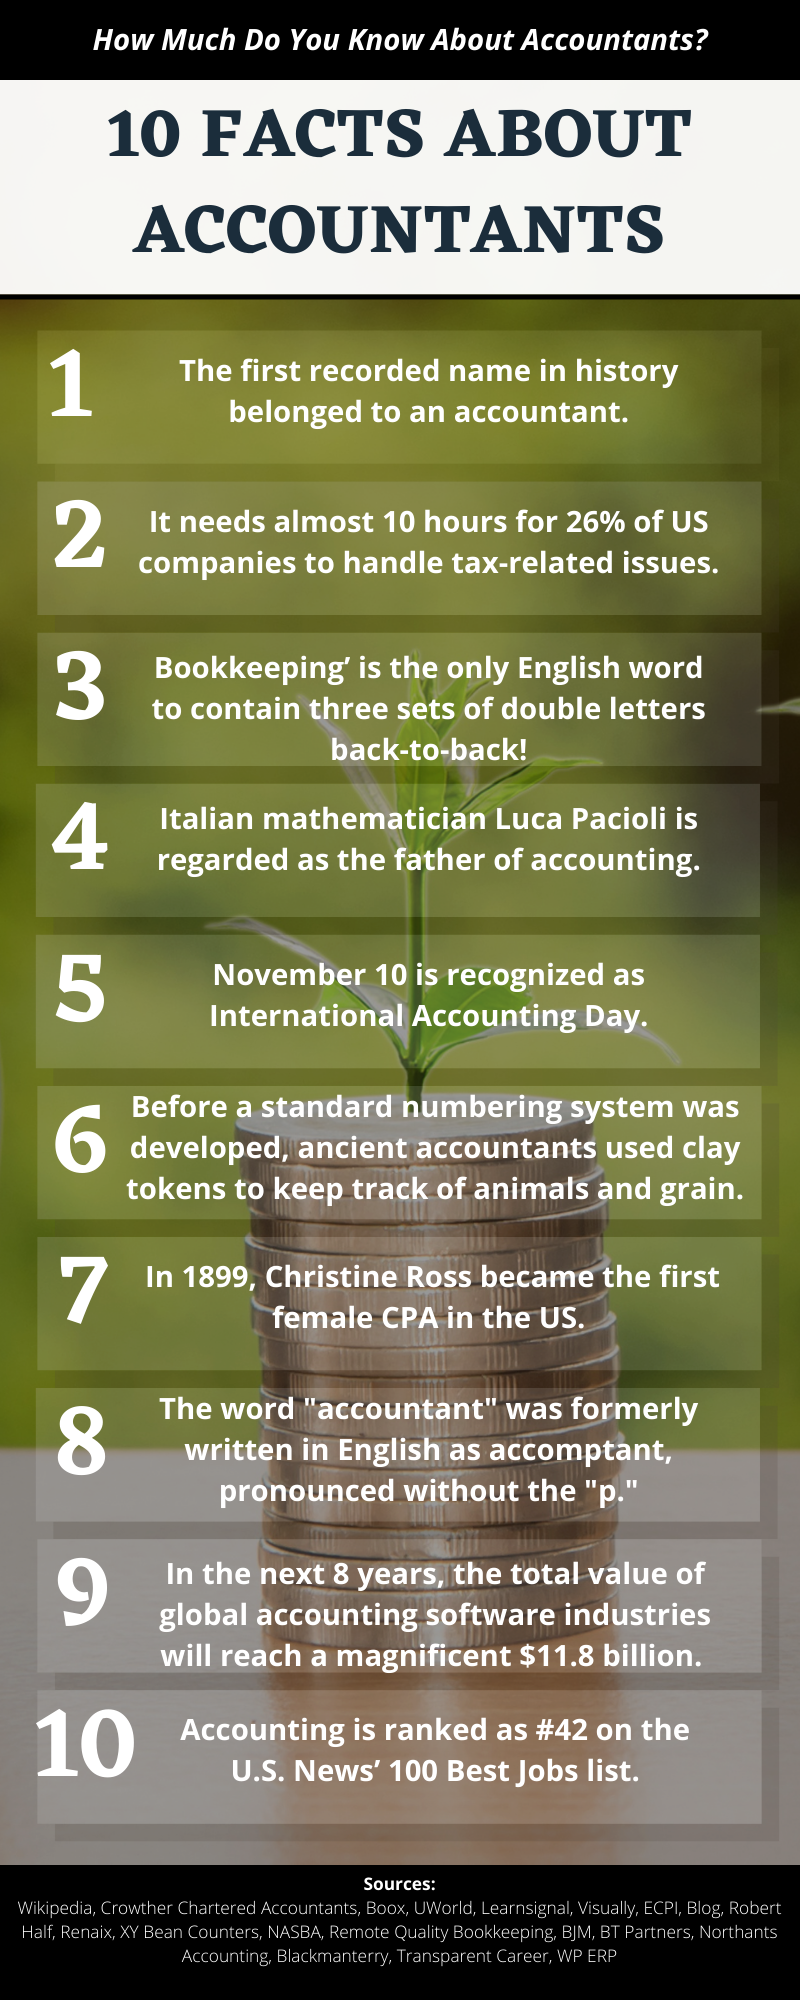 https://secure.emochila.com/swserve/siteAssets/site14148/images/Robert_Arnone_CPA_-_How_Much_Do_You_Know_About_Accountants_-_101_Facts_About_Accountants.png